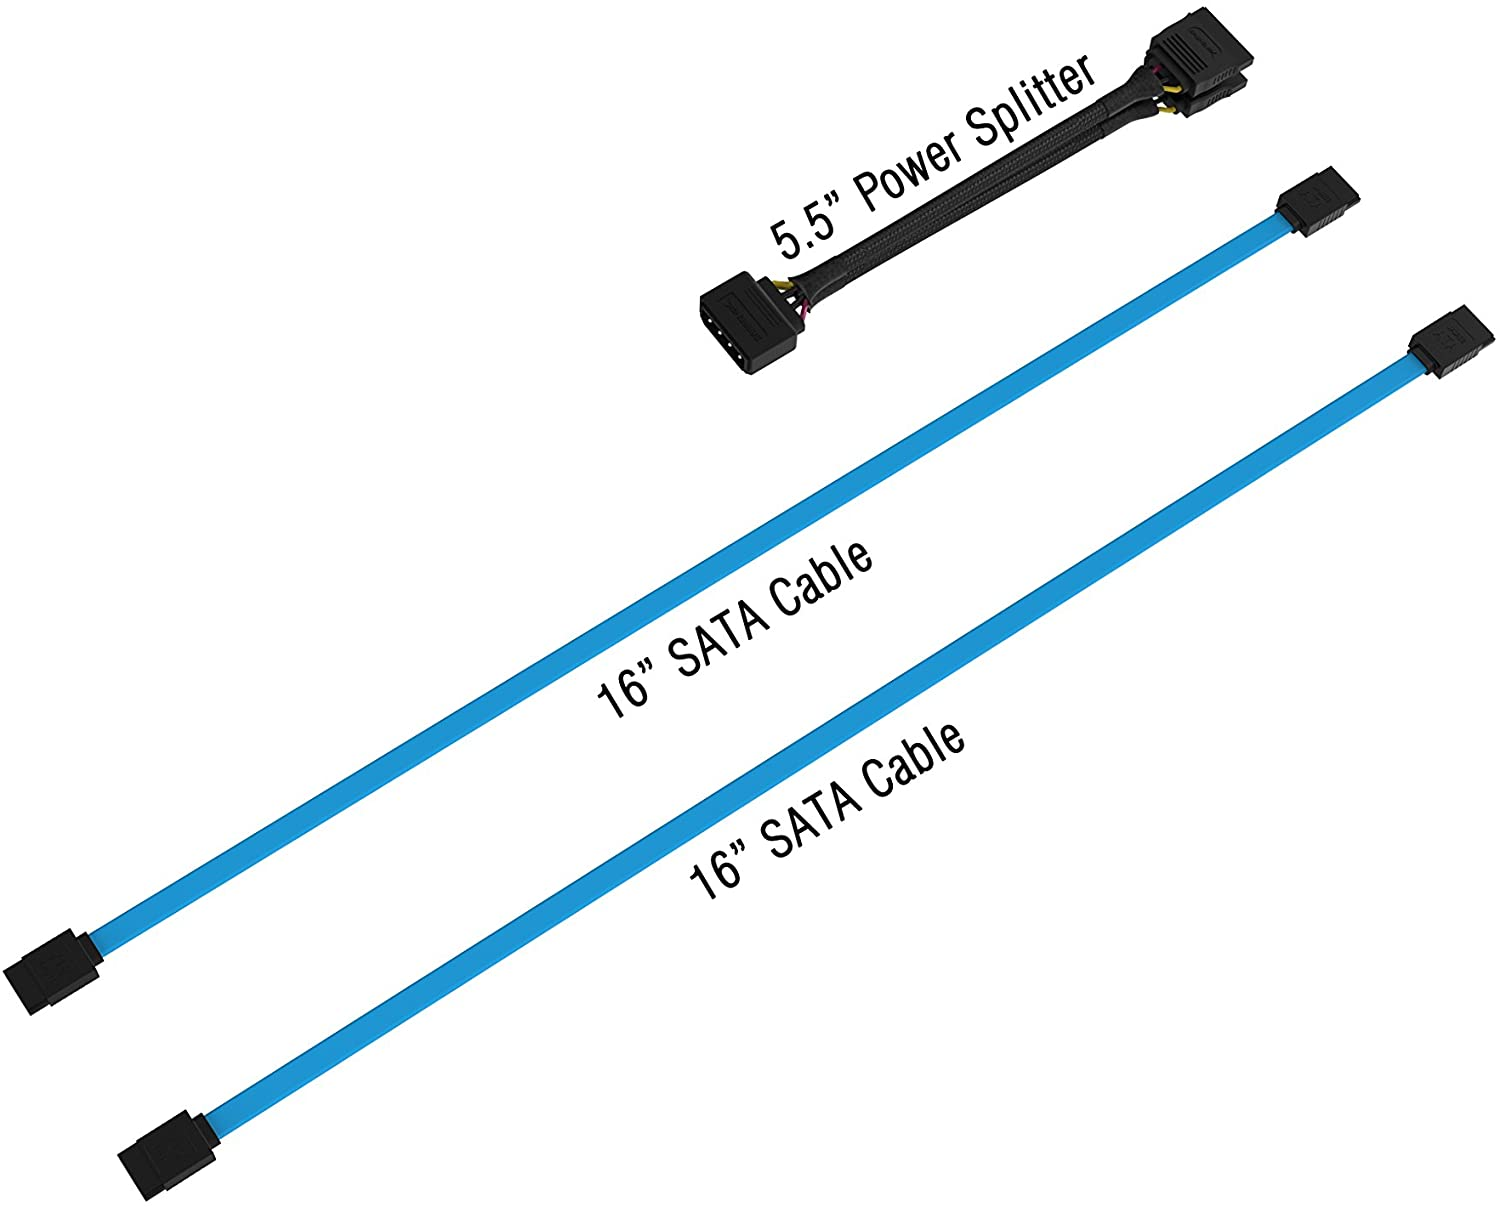 "Sabrent 5.5"" Molex 4 Pin to x 2 15 Pin SATA Power Splitter Cable, 16"" x 2 SATA Data Cables (CB–SDSP)"